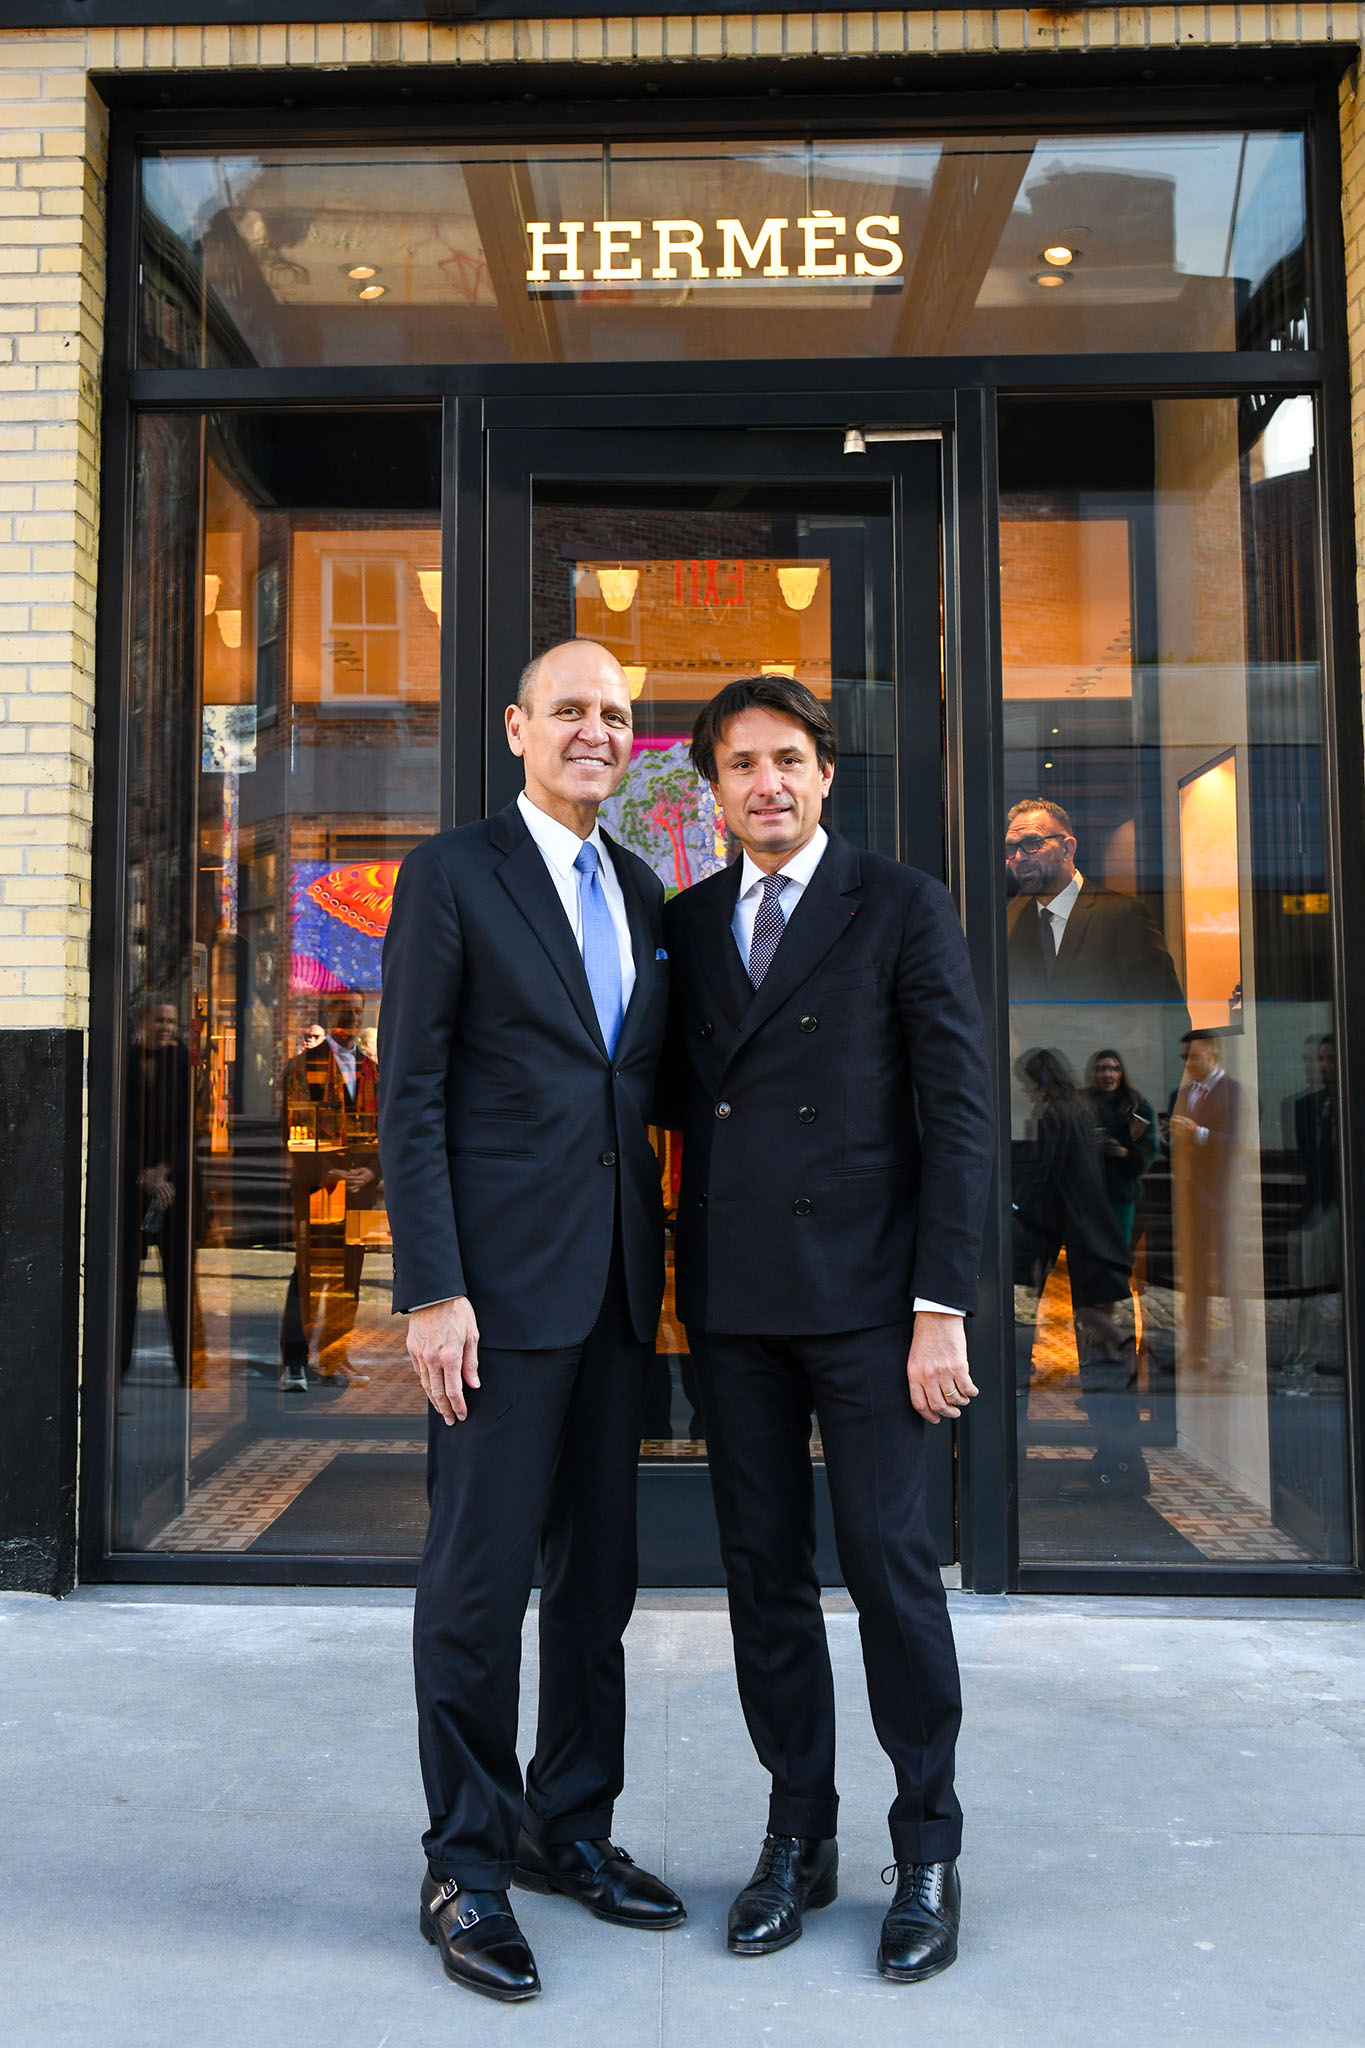 Robert Chavez with Hermès International ceo Axel Dumas.